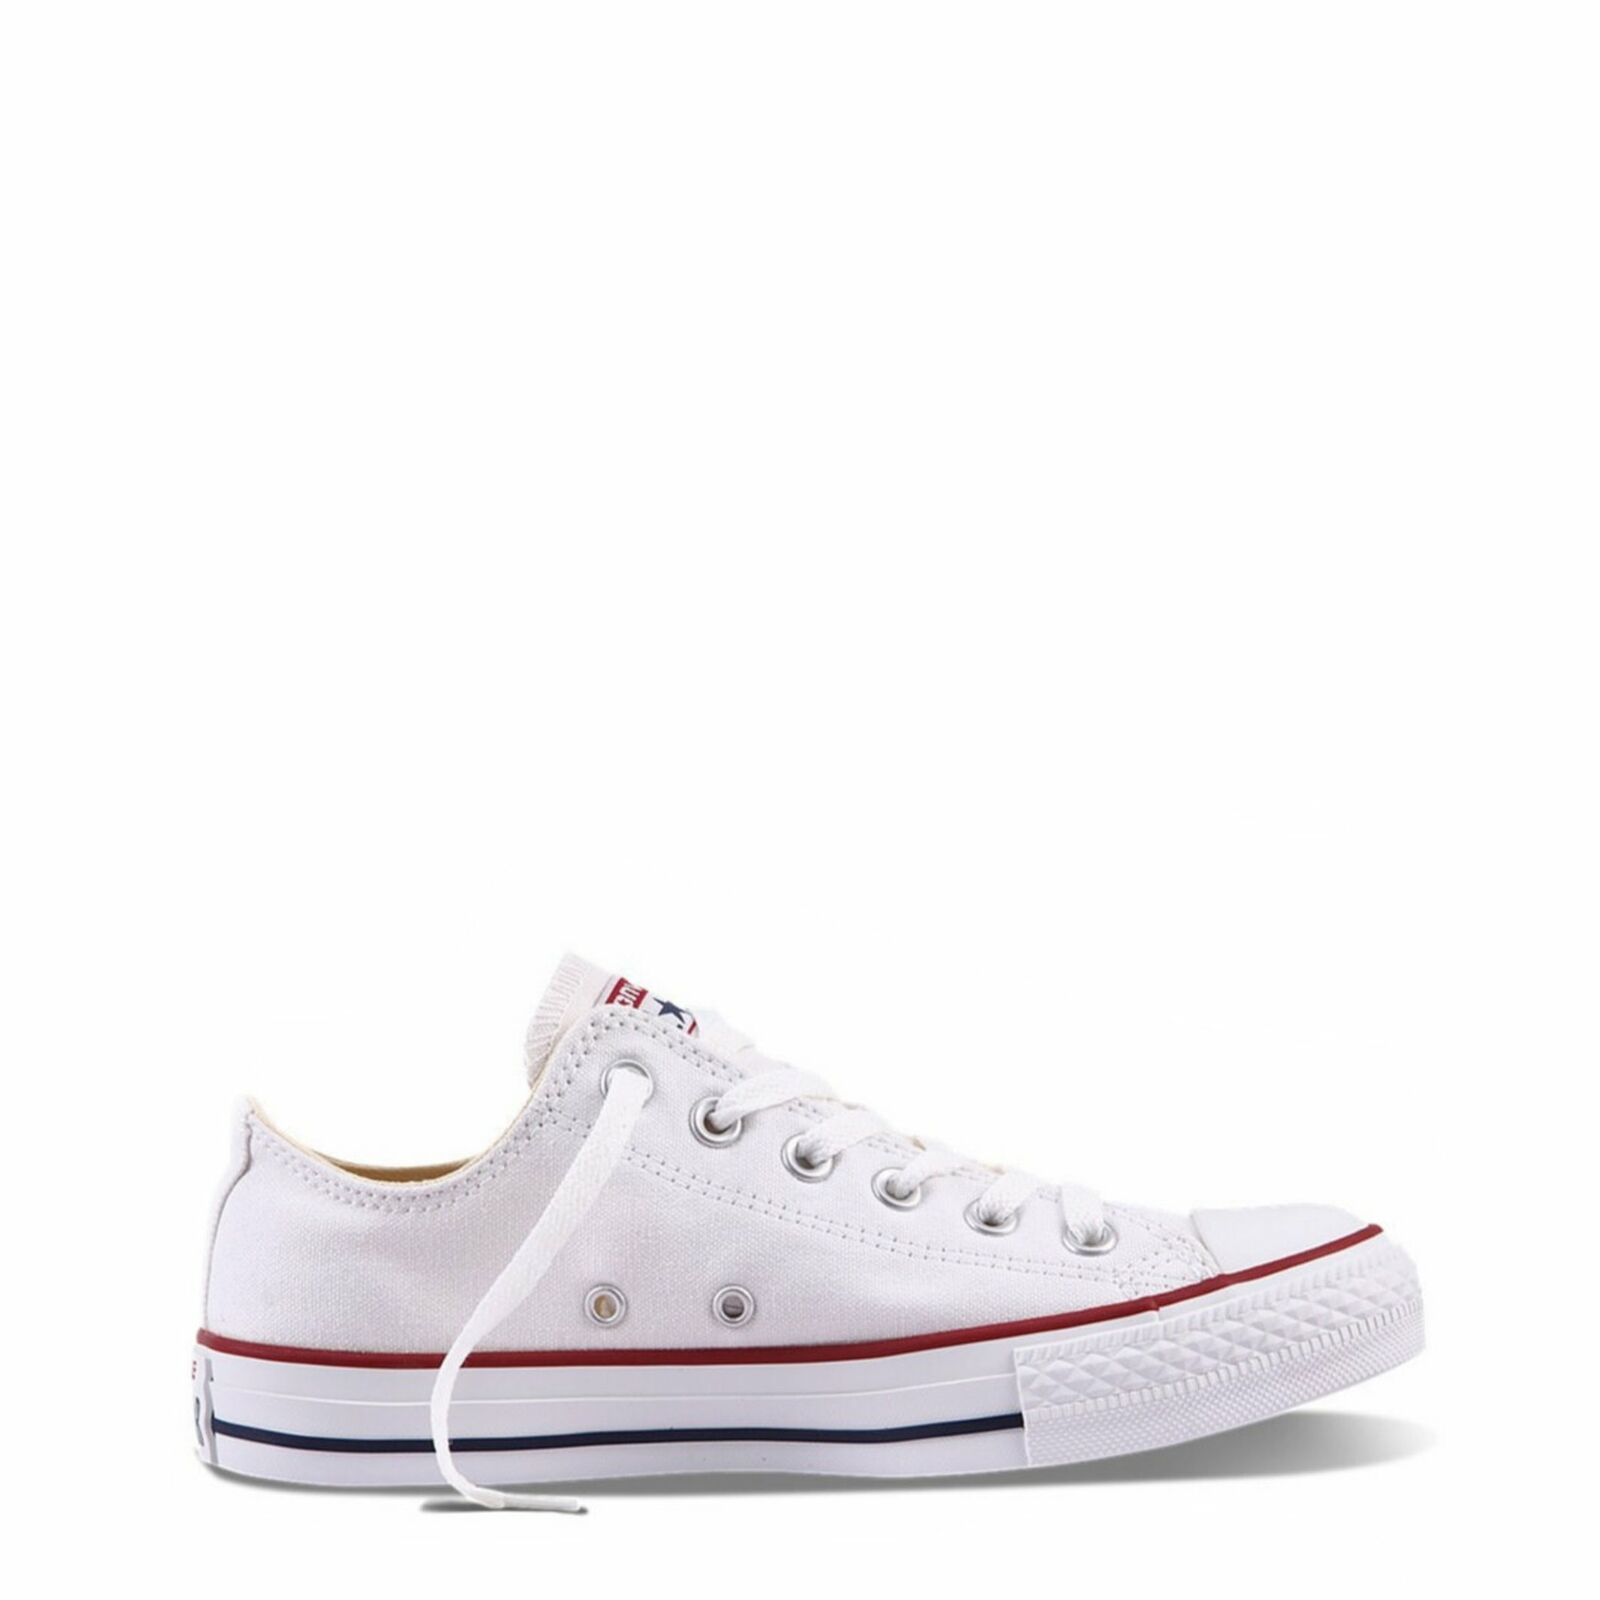 5b5f6ac7b28267 Converse Chuck Taylor All Star Lean Ox Shoes Trainers White 142270c ...